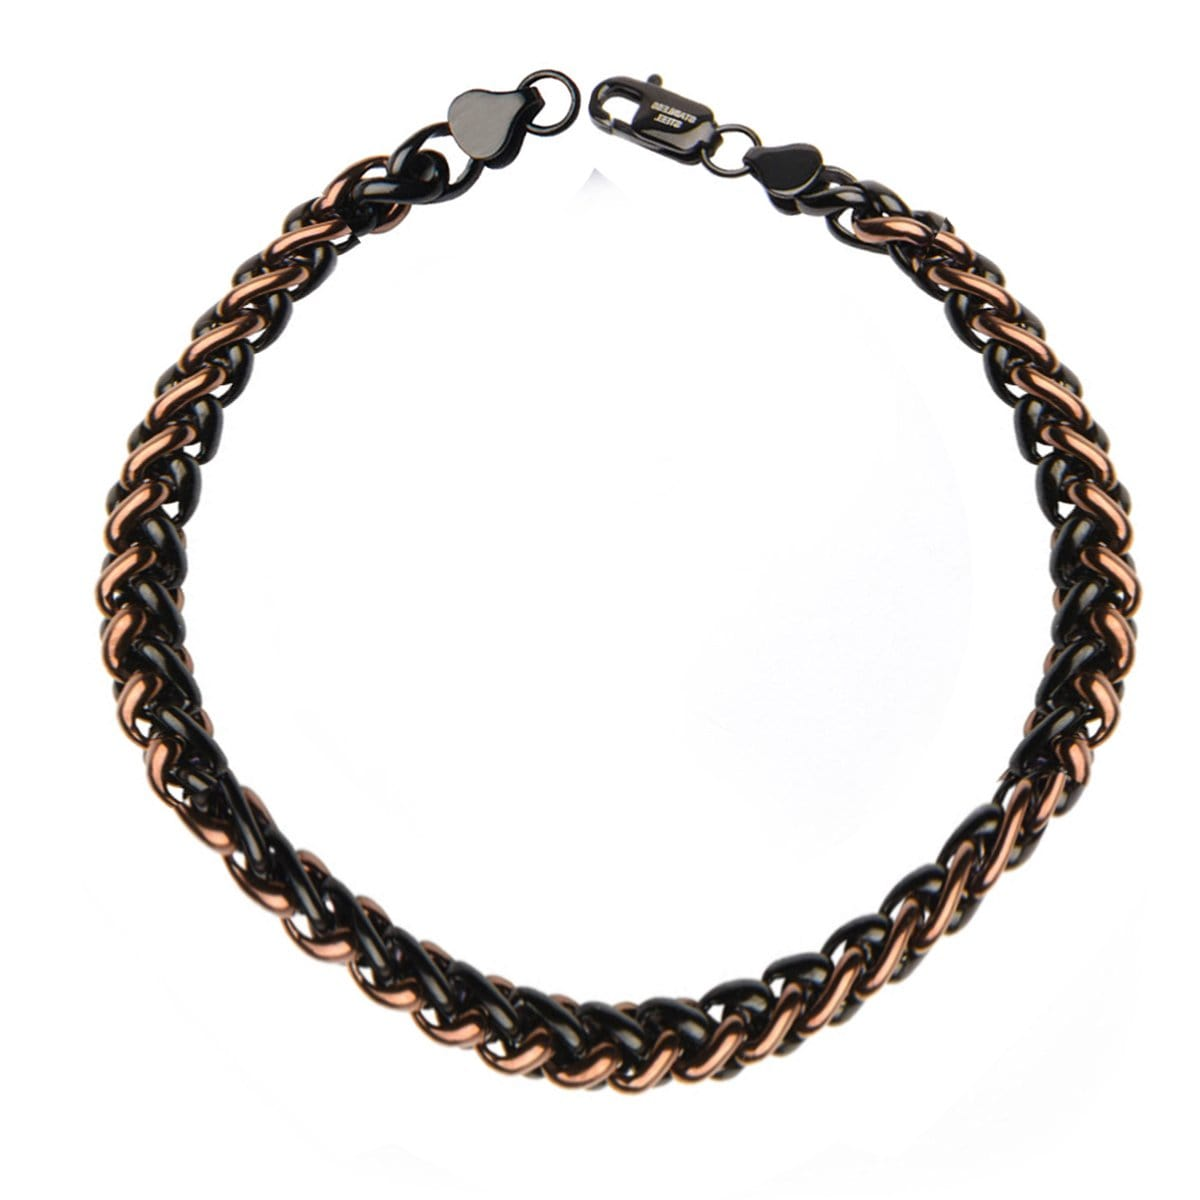 Brown & Black Stainless Steel Wheat Chain Bracelet - Inox Jewelry India